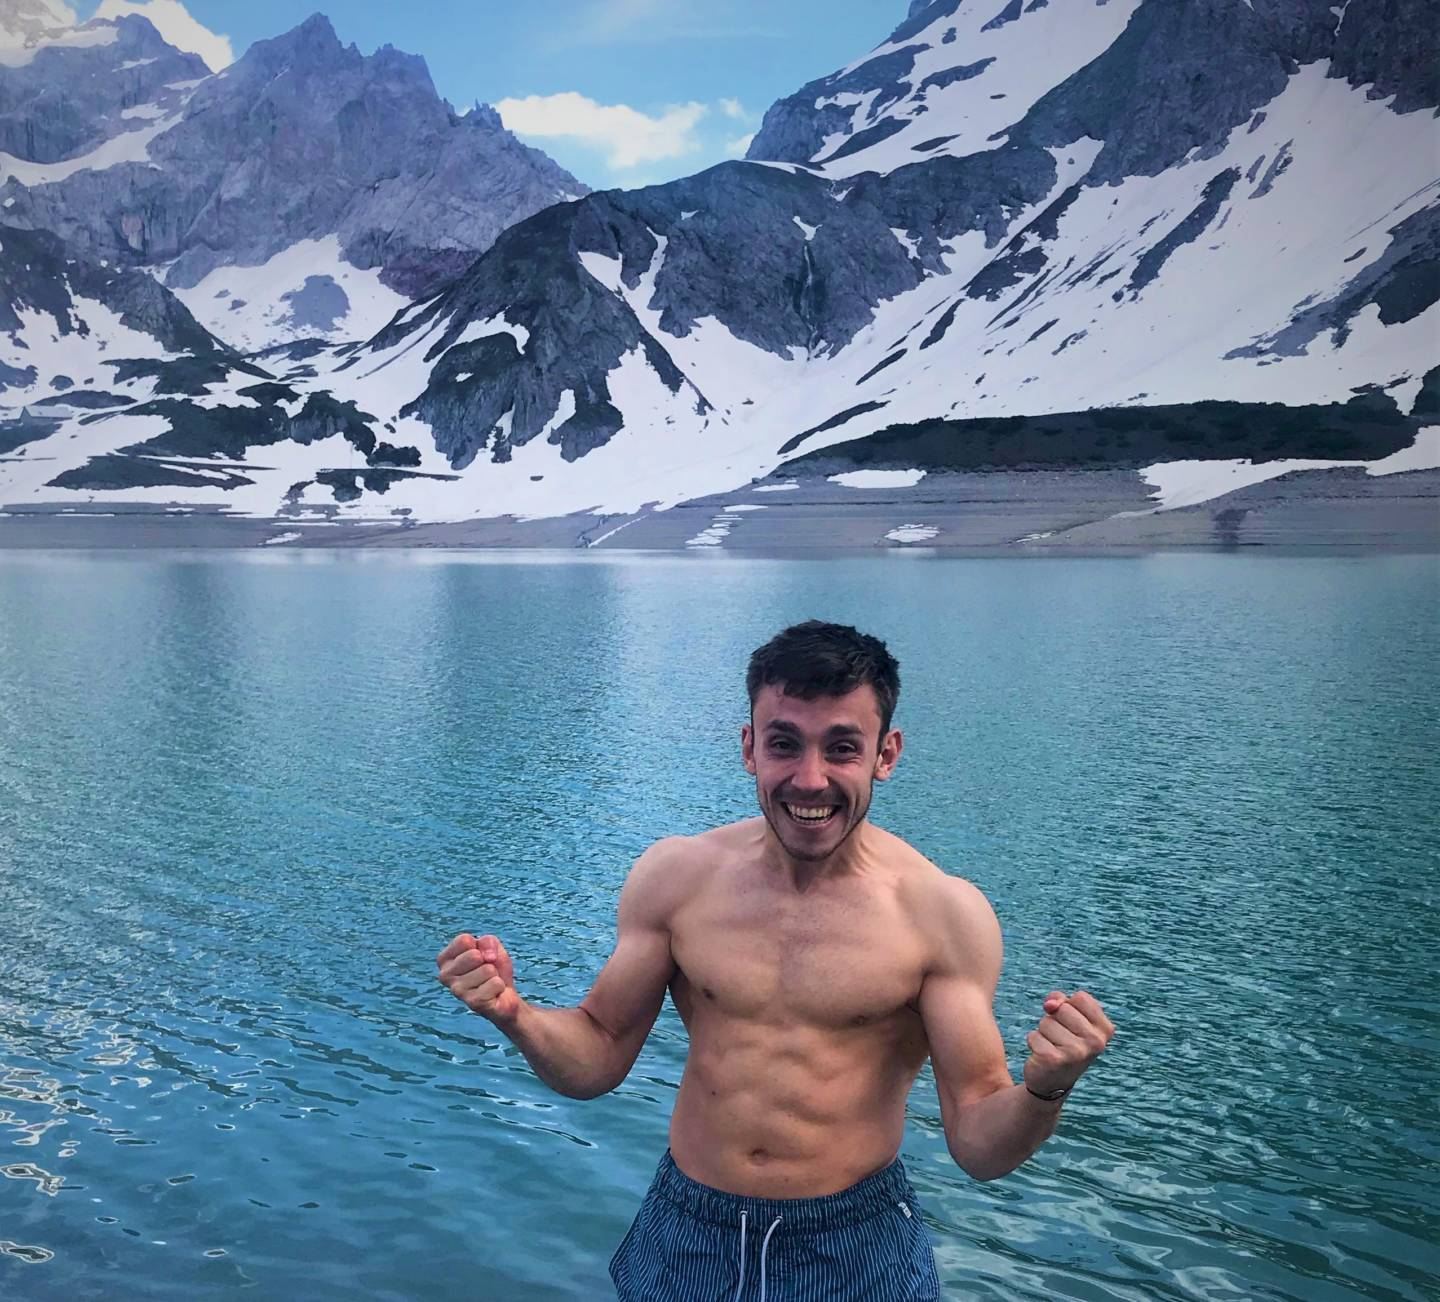 Wim Hof Methode Kaeltetraining